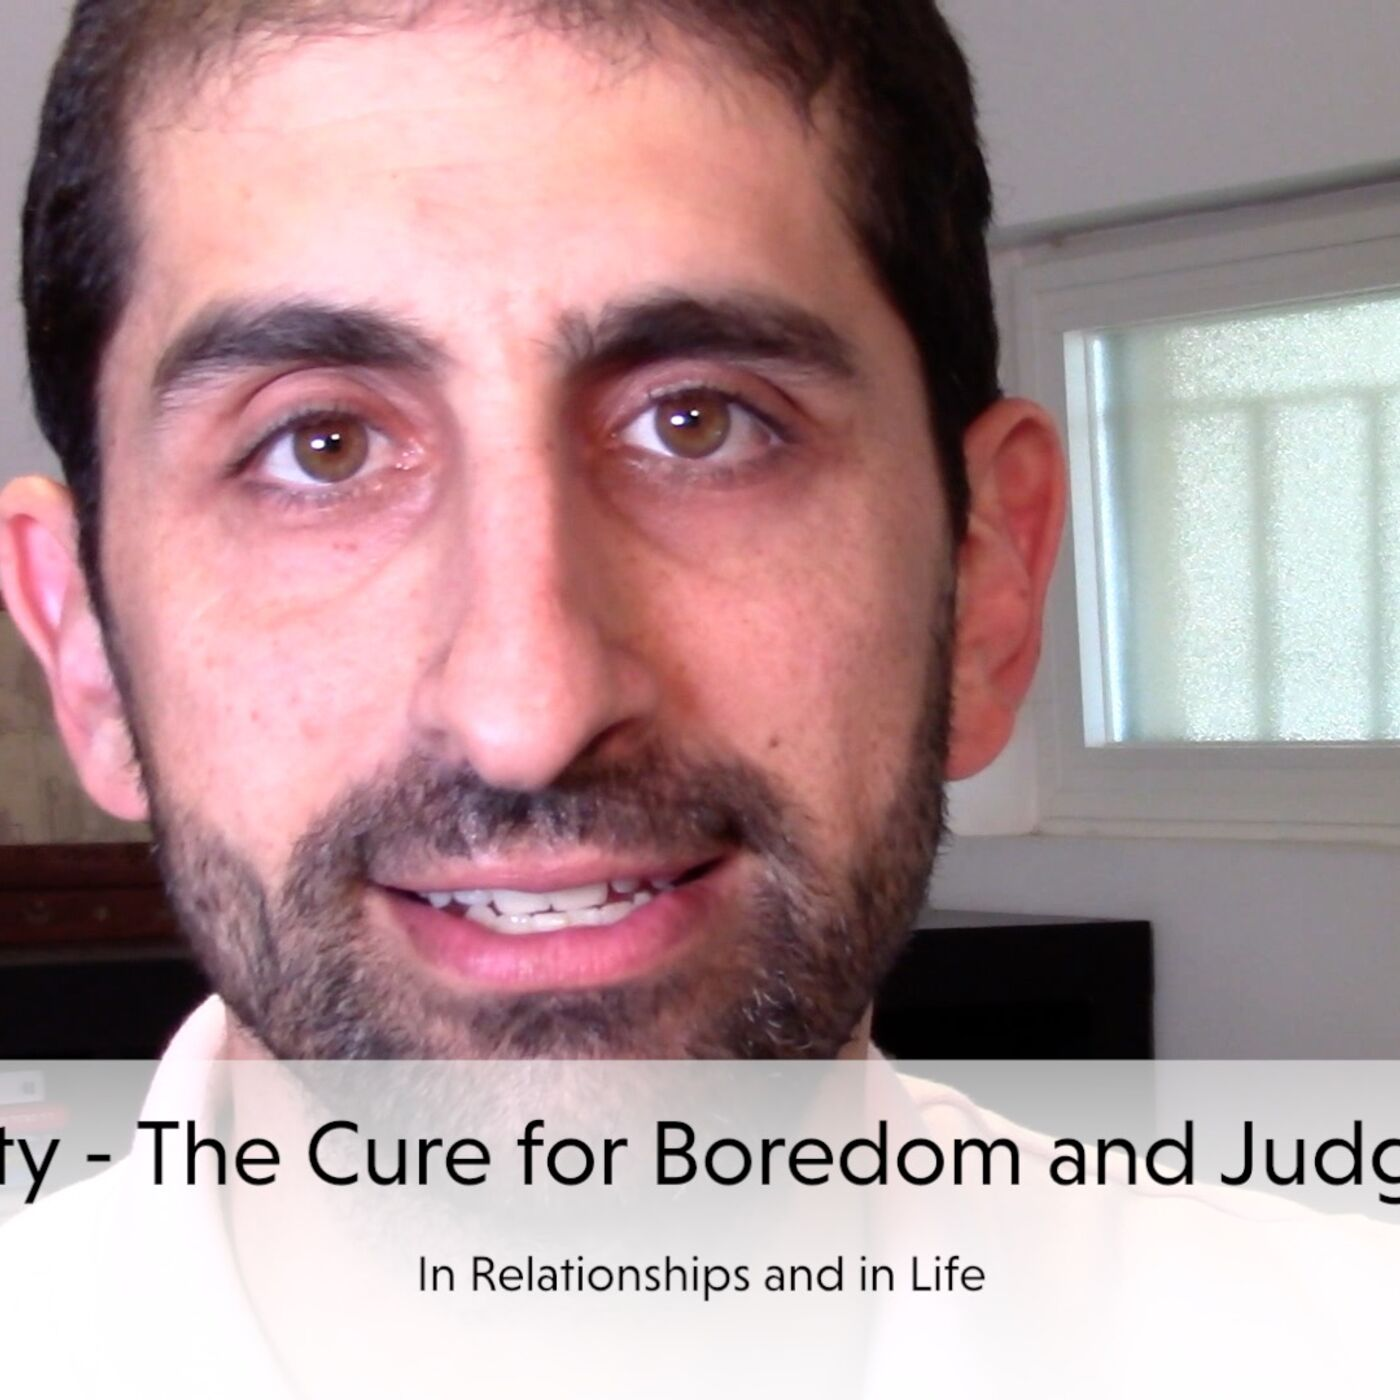 Curiosity - The Cure for Judgement and Boredom in Your Relationship and Life